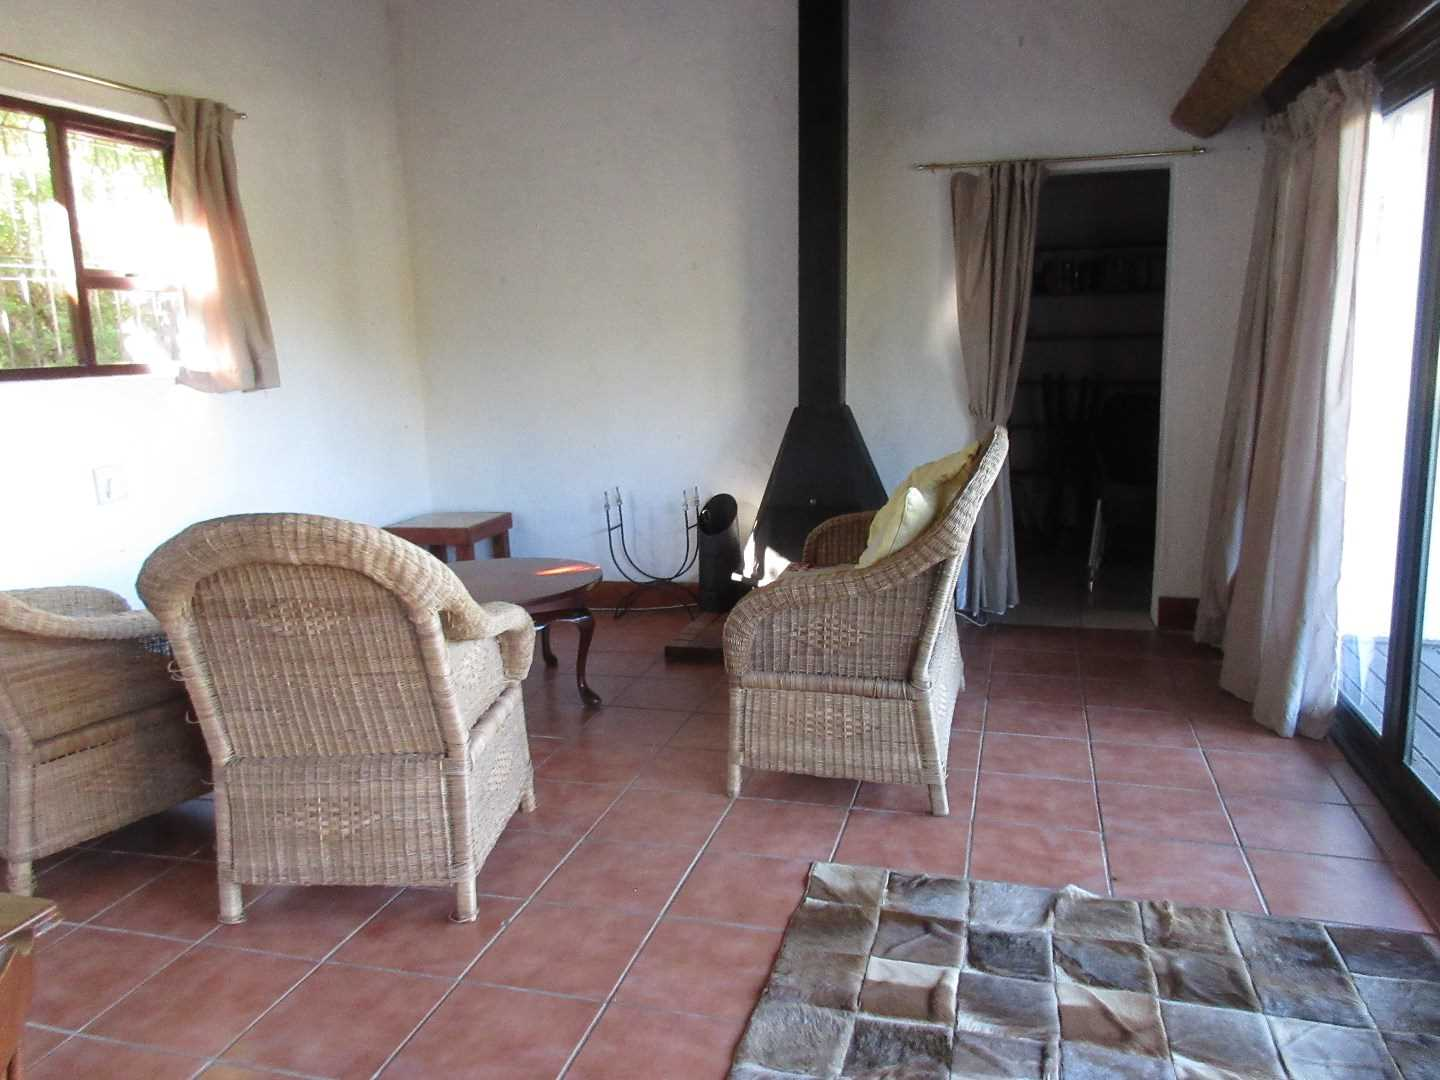 Interior Thatched Dwelling